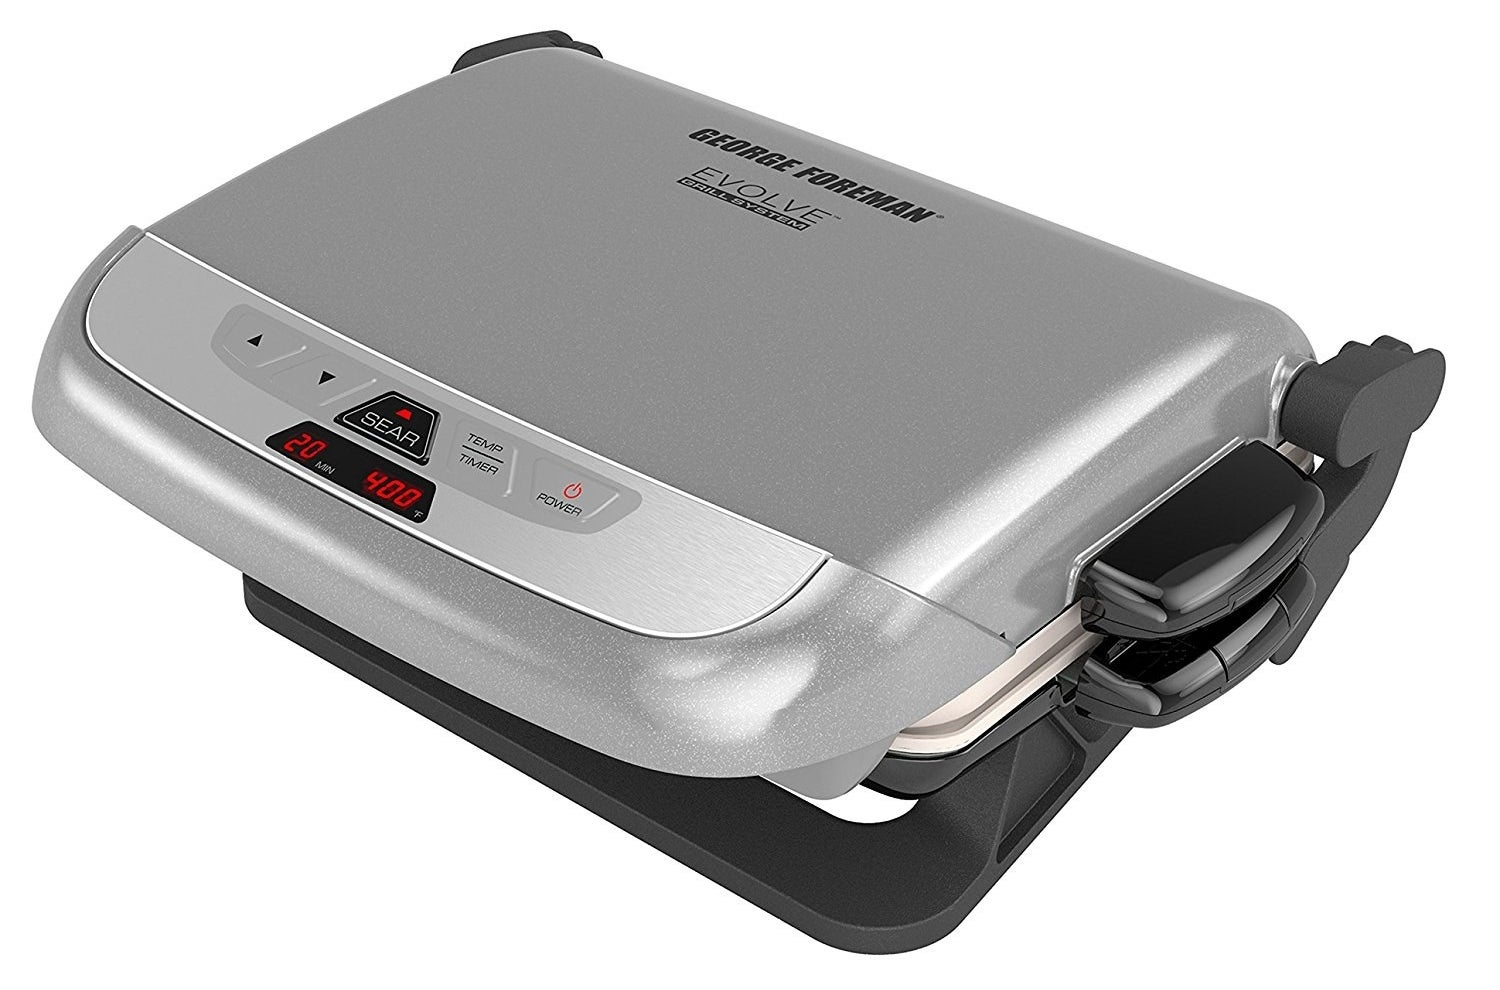 "Promising review: ""We are loving this for bringing our grilling indoors for the winter! The nonstick plates are truly nonstick. You don't need oil at all, and what looks like truly burnt on material falls right off under running water or poking it with the little plastic stick it comes with. We have done steaks, pork chops, chicken, fish, and waffles. Works great. Don't overfill it with waffle batter, or it will mush out the back and make a big mess. The plates hand wash easily or go through the dishwasher favorably too. The 'sear' option is a little quirky but works fine. Pork chops or steaks with a large bone are harder to cook, as the plates sit on the hard bone and don't otherwise make as much contact with the meat. This makes them take longer but they still cook fine."" —A. JarrellPrice: $83.42"